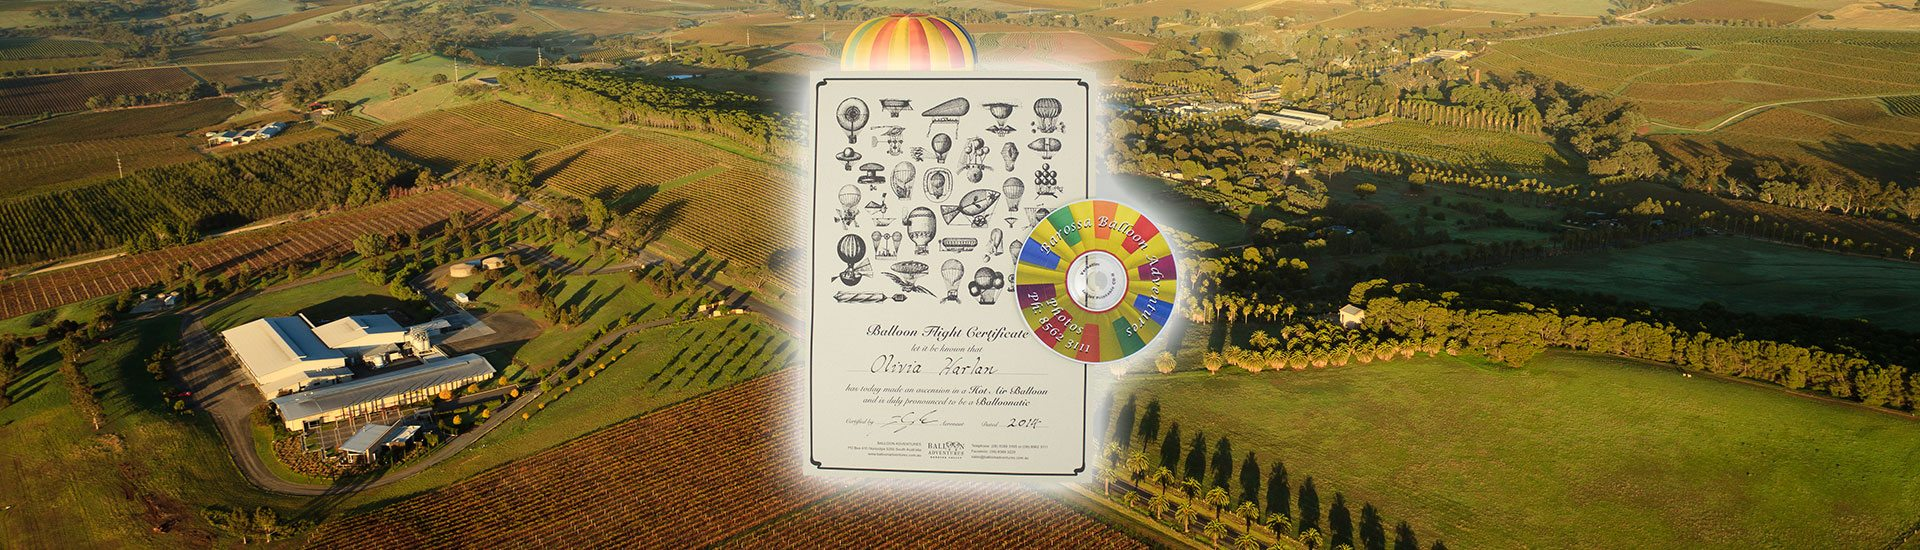 balloon-adventures-flights-over-the-barossa-valley-merchandise-photo-cd-and-flying-certificate